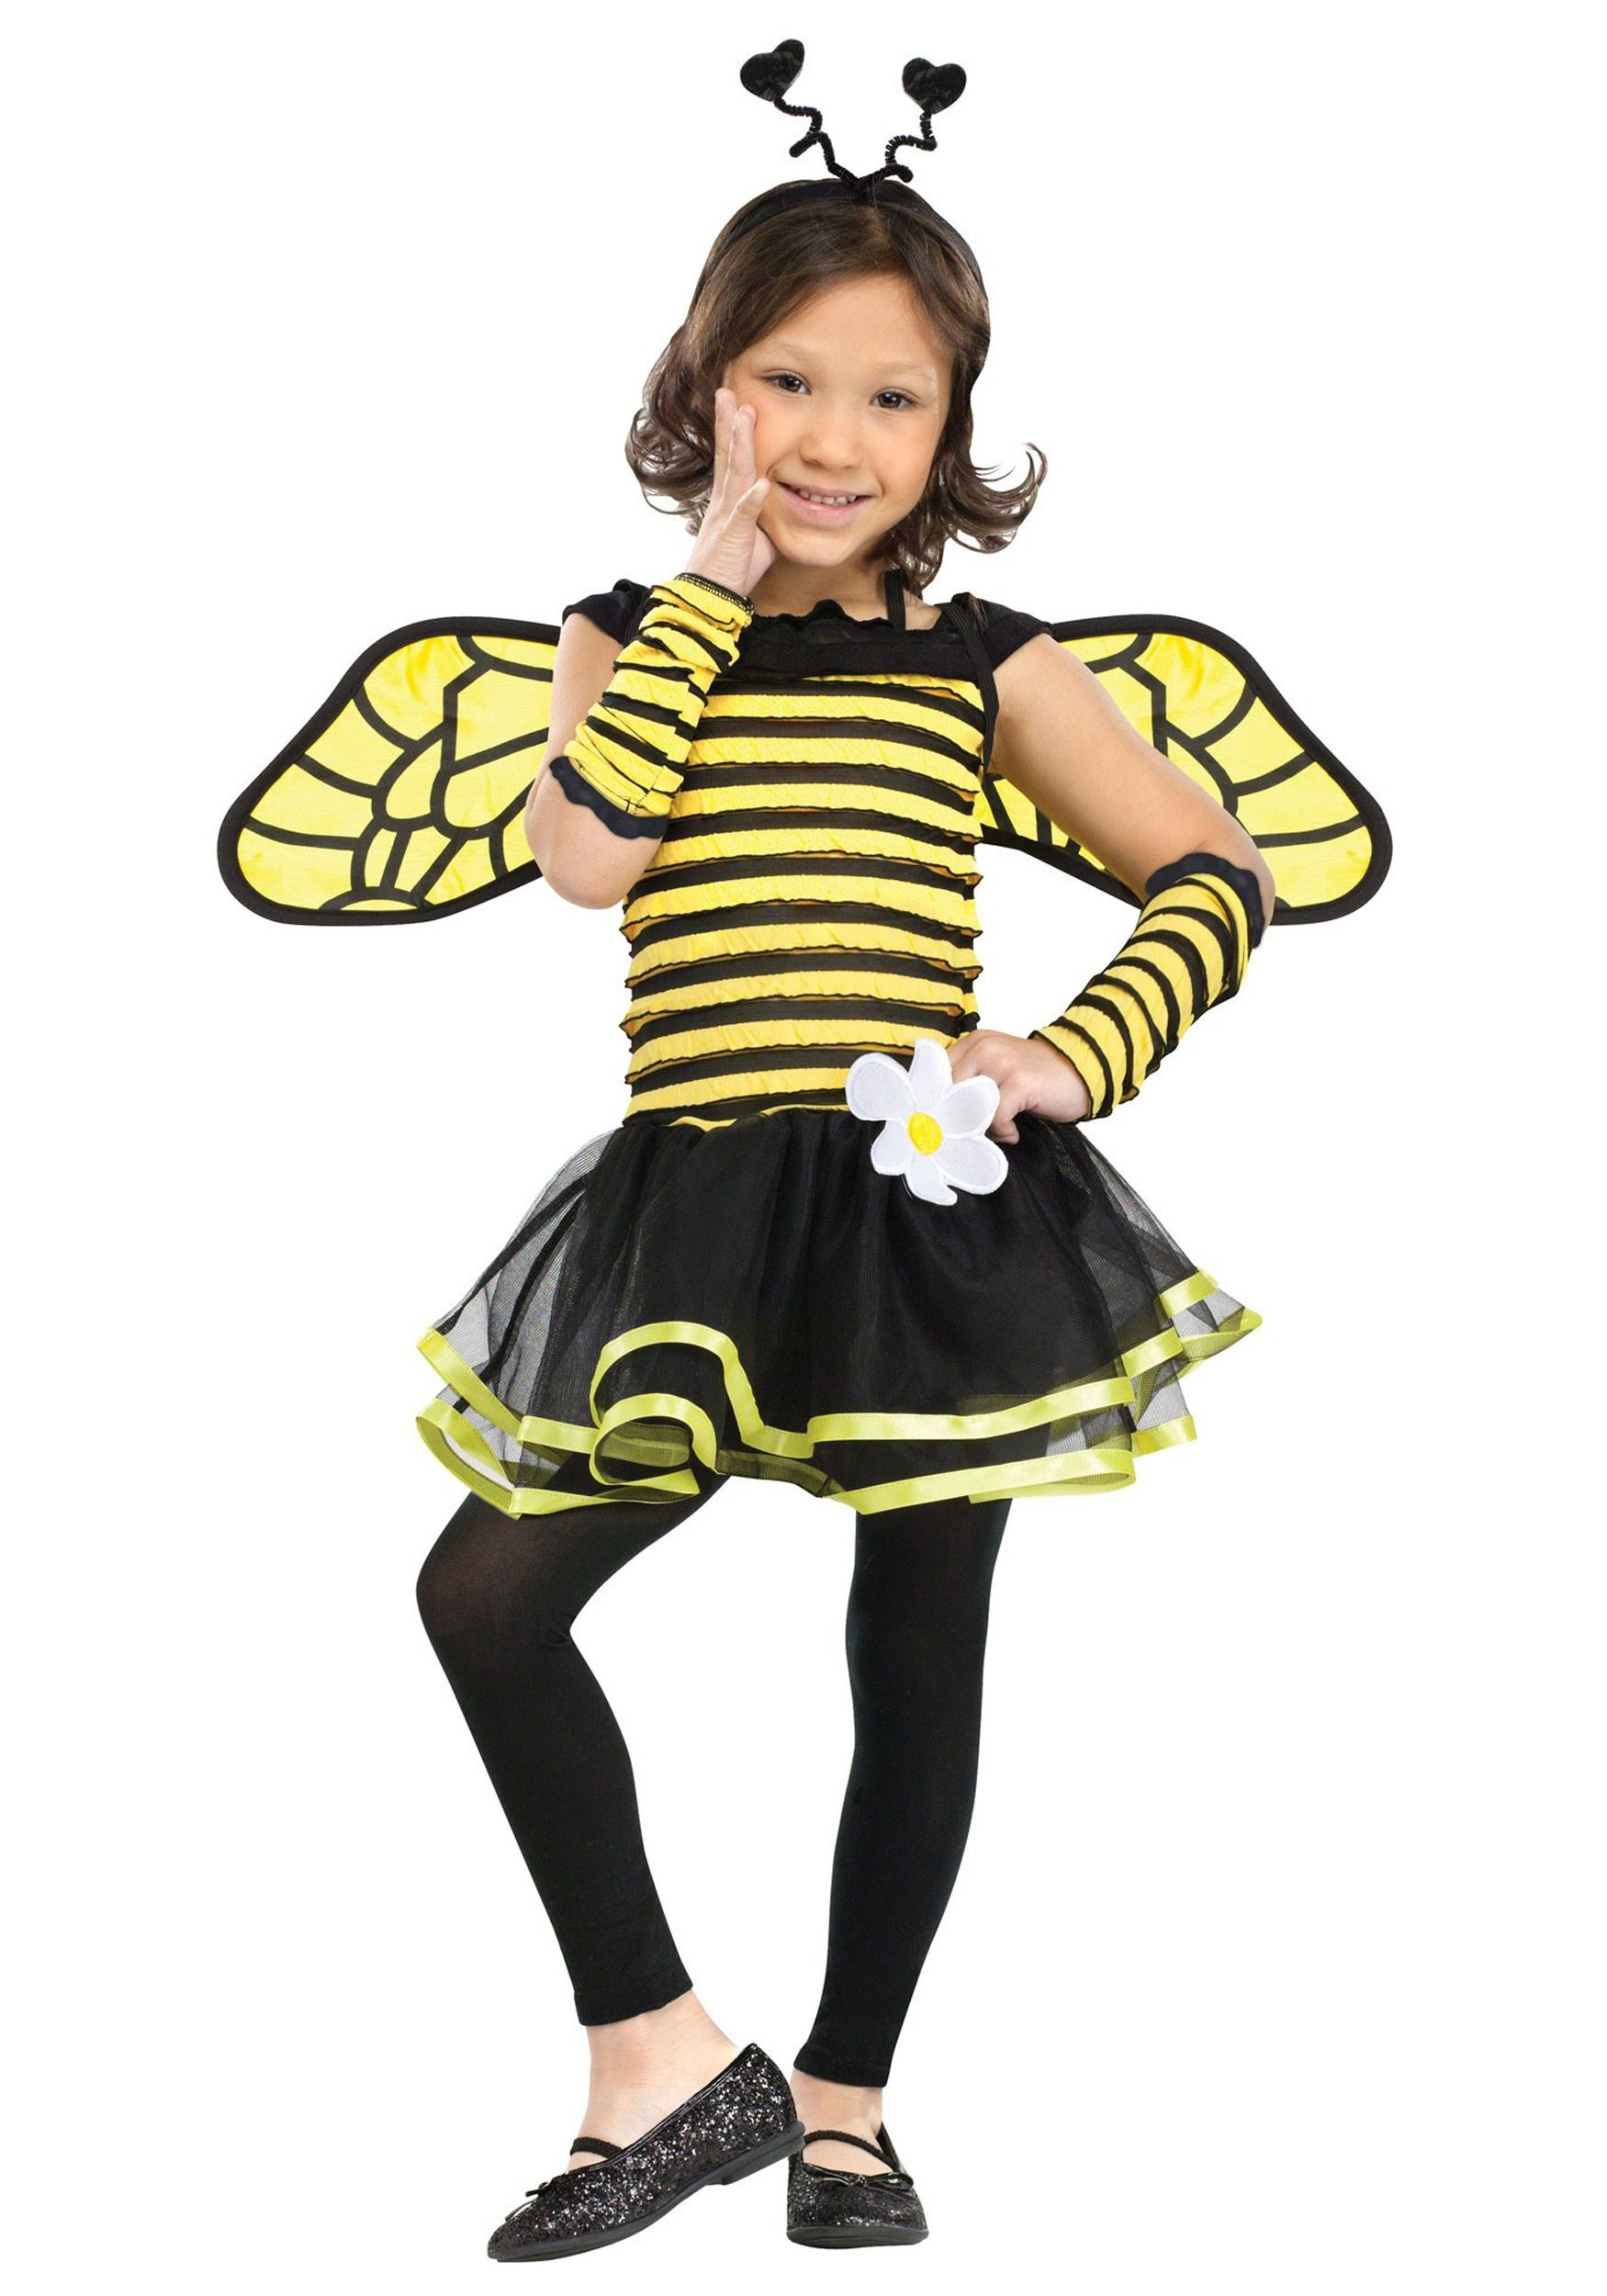 Toddler Busy Bee Costume Halloween Costume Inspirations